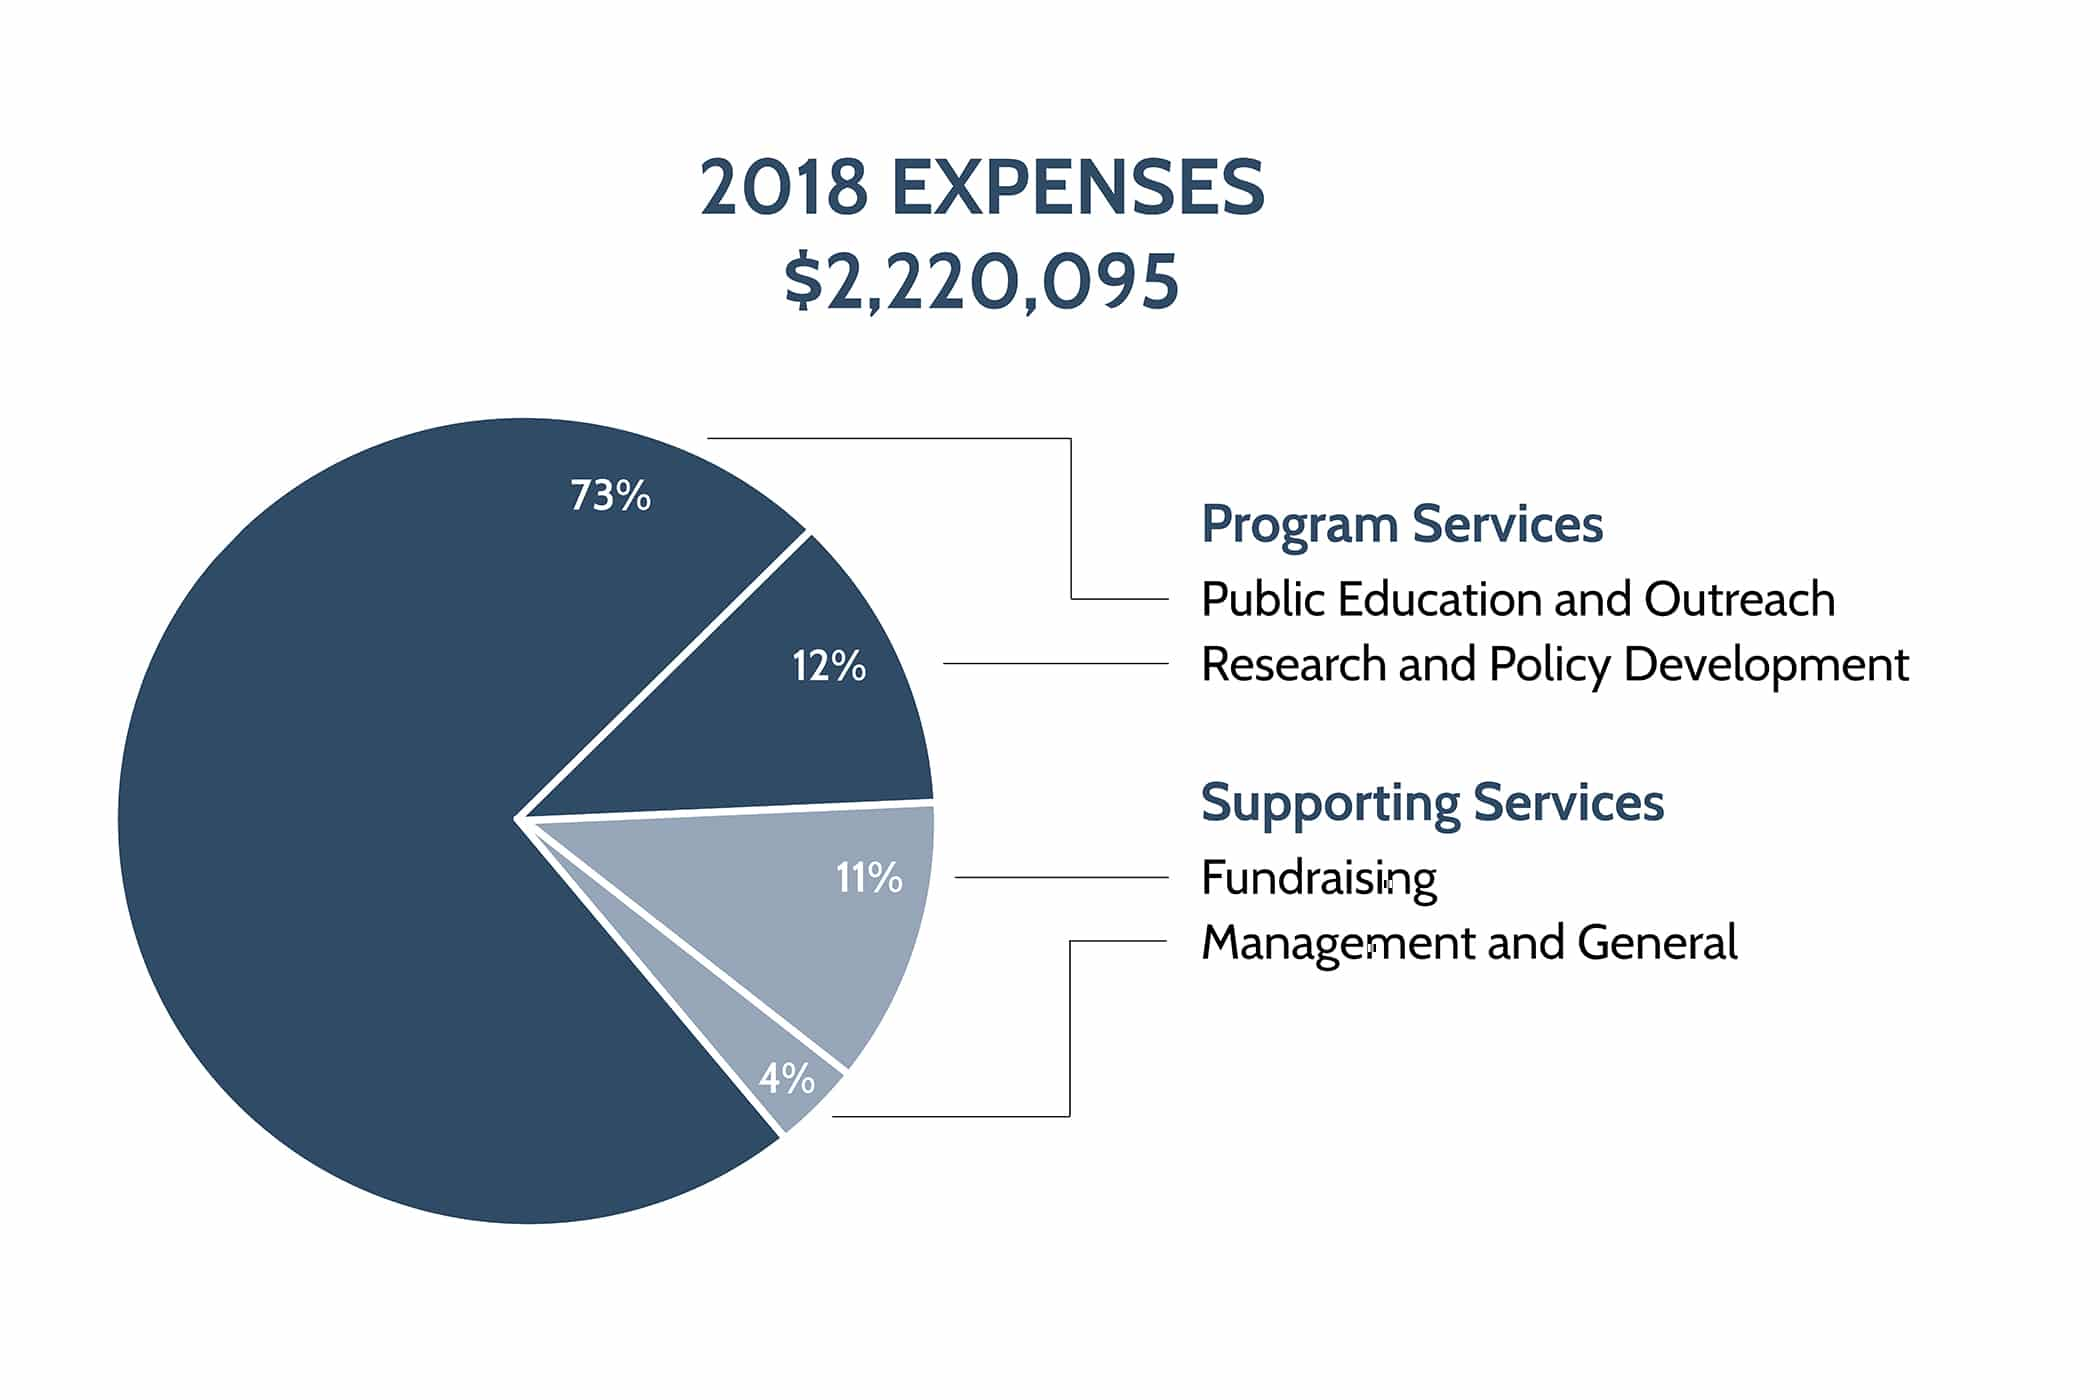 Pie chart of 2018 Mono Lake Committee Expenses.